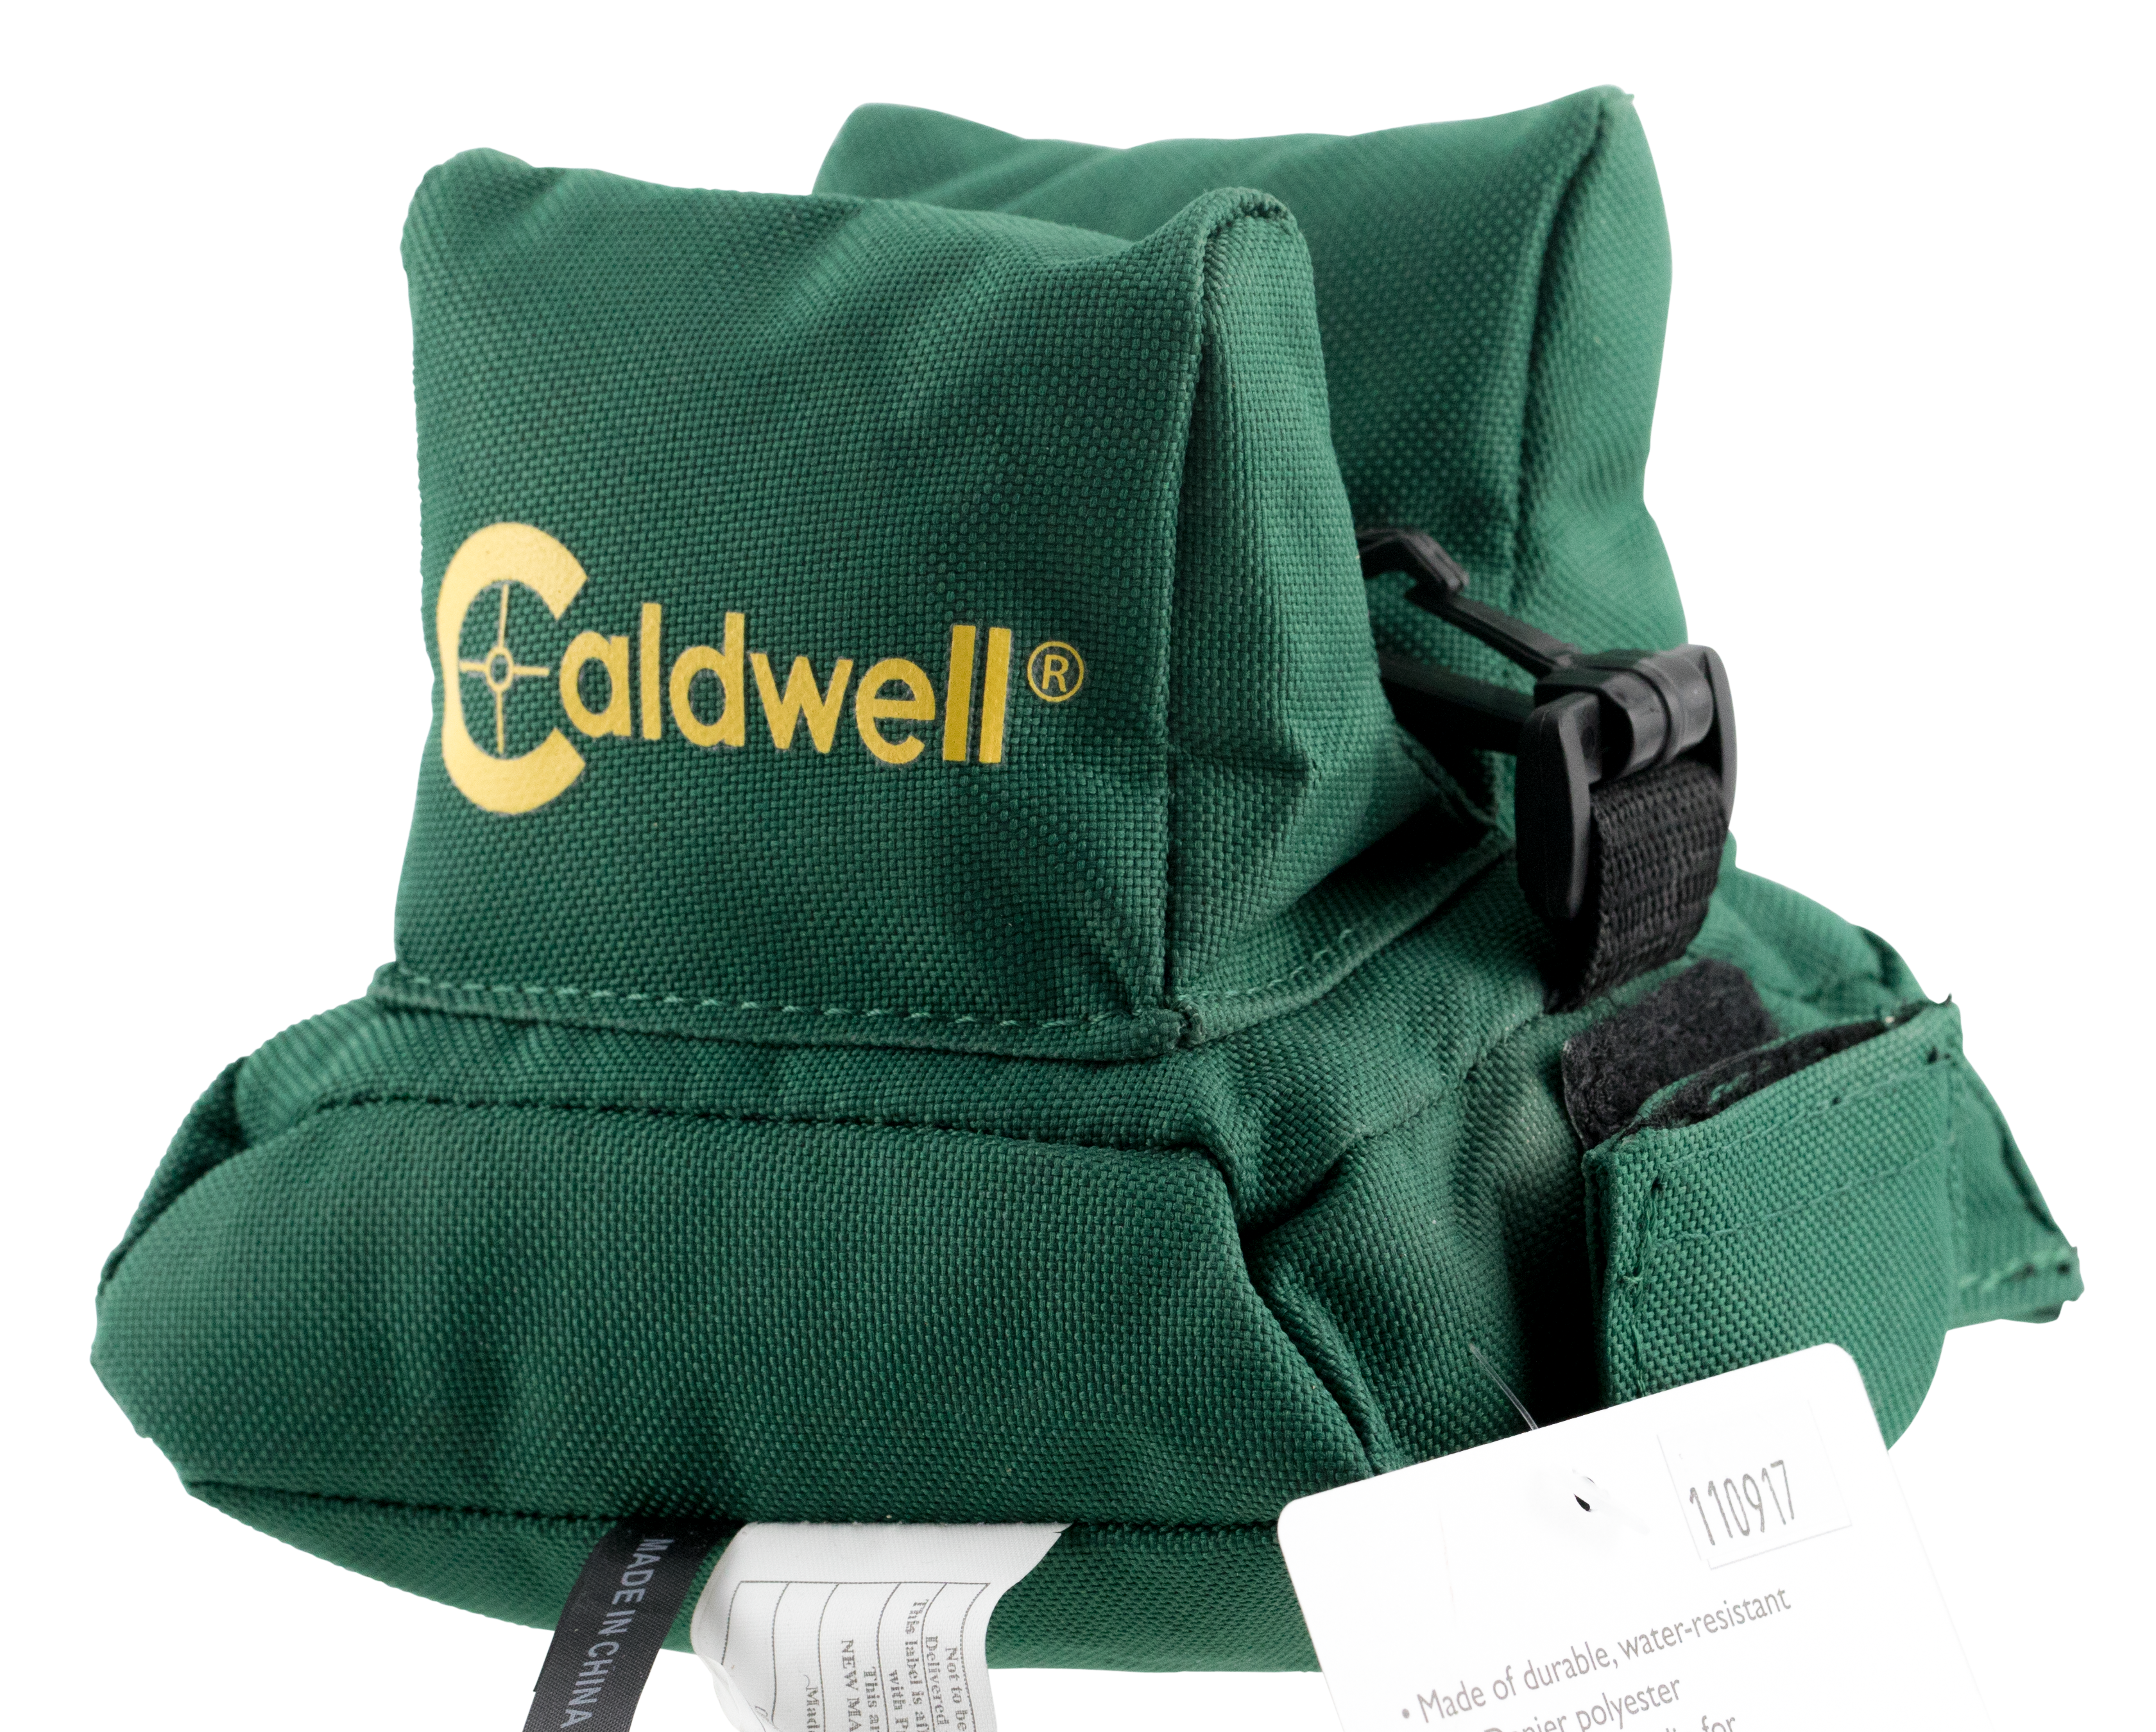 Caldwell DeadShot Shooting Bag Rear Bag - Filled